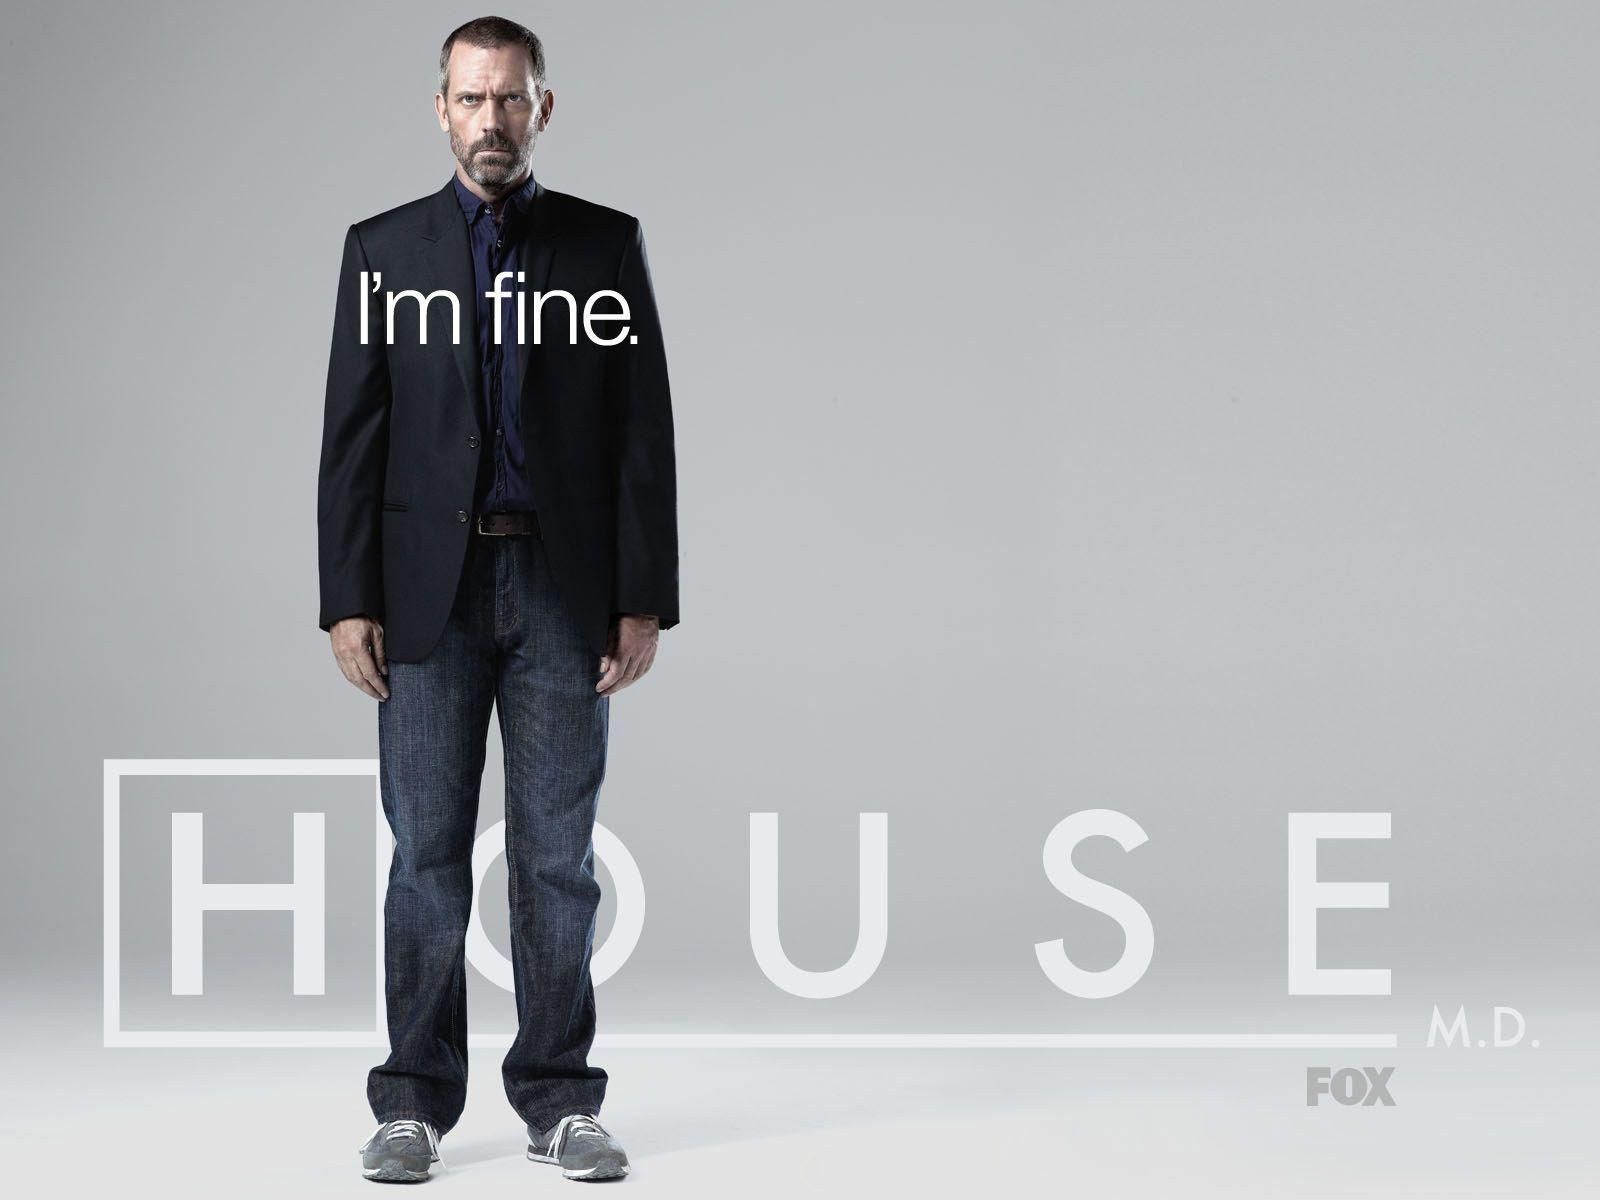 house md wallpaper - wolverine&house Wallpaper (16188438) - Fanpop